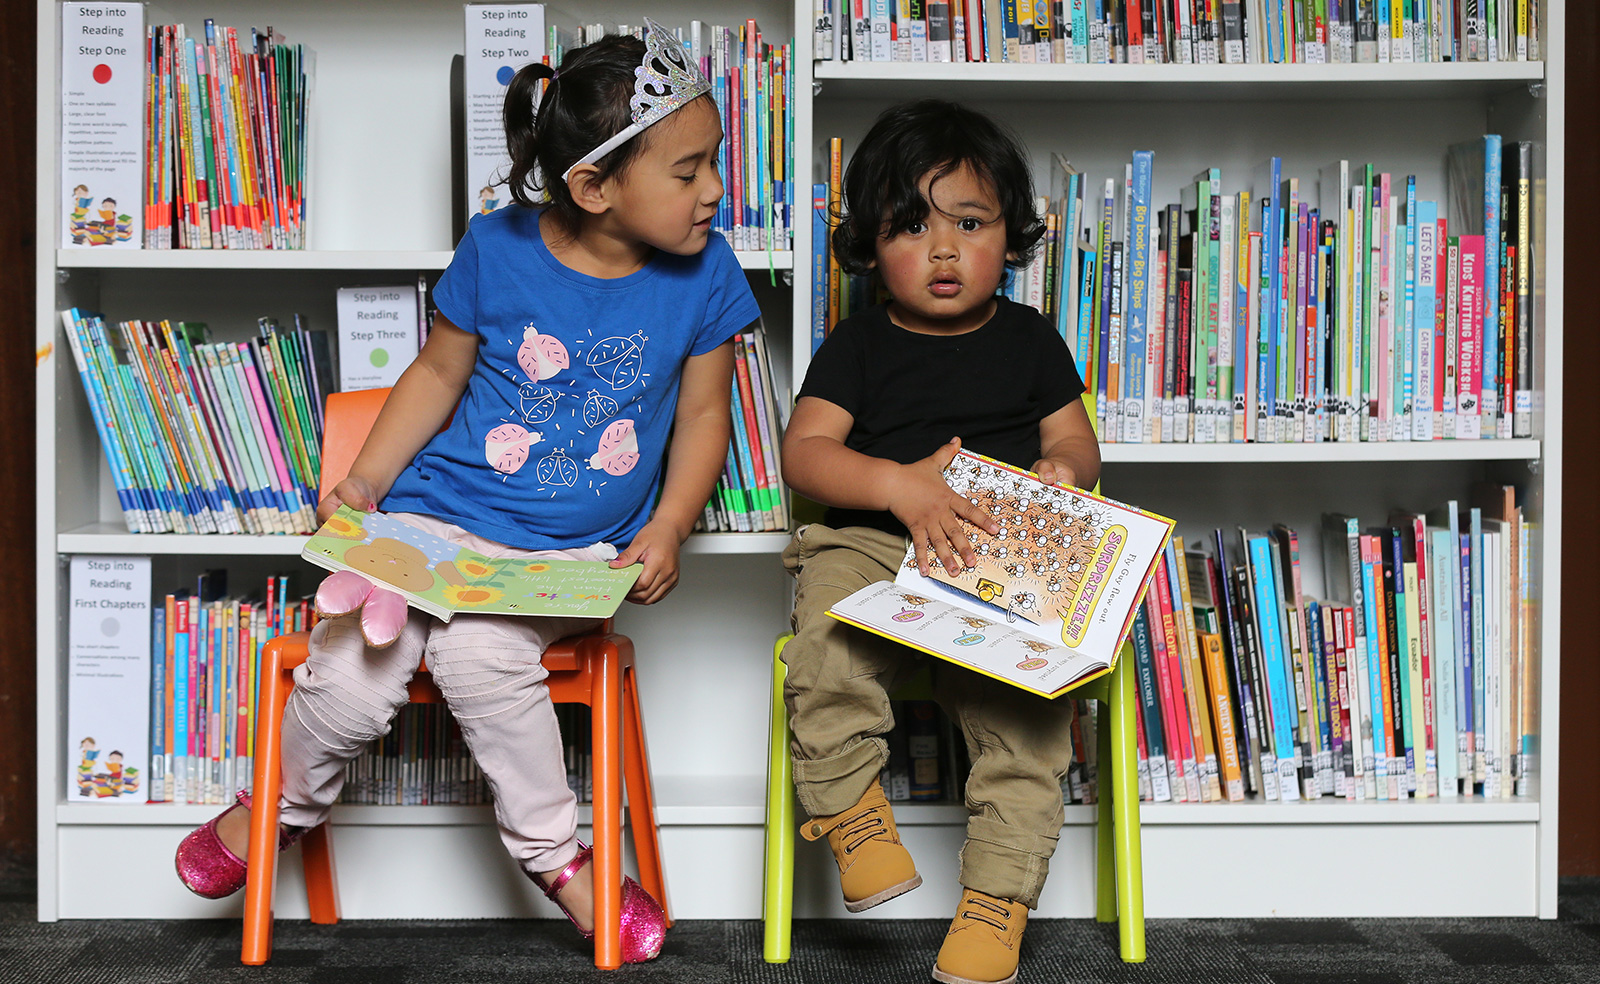 Two children sitting in front of a book case and looking at books